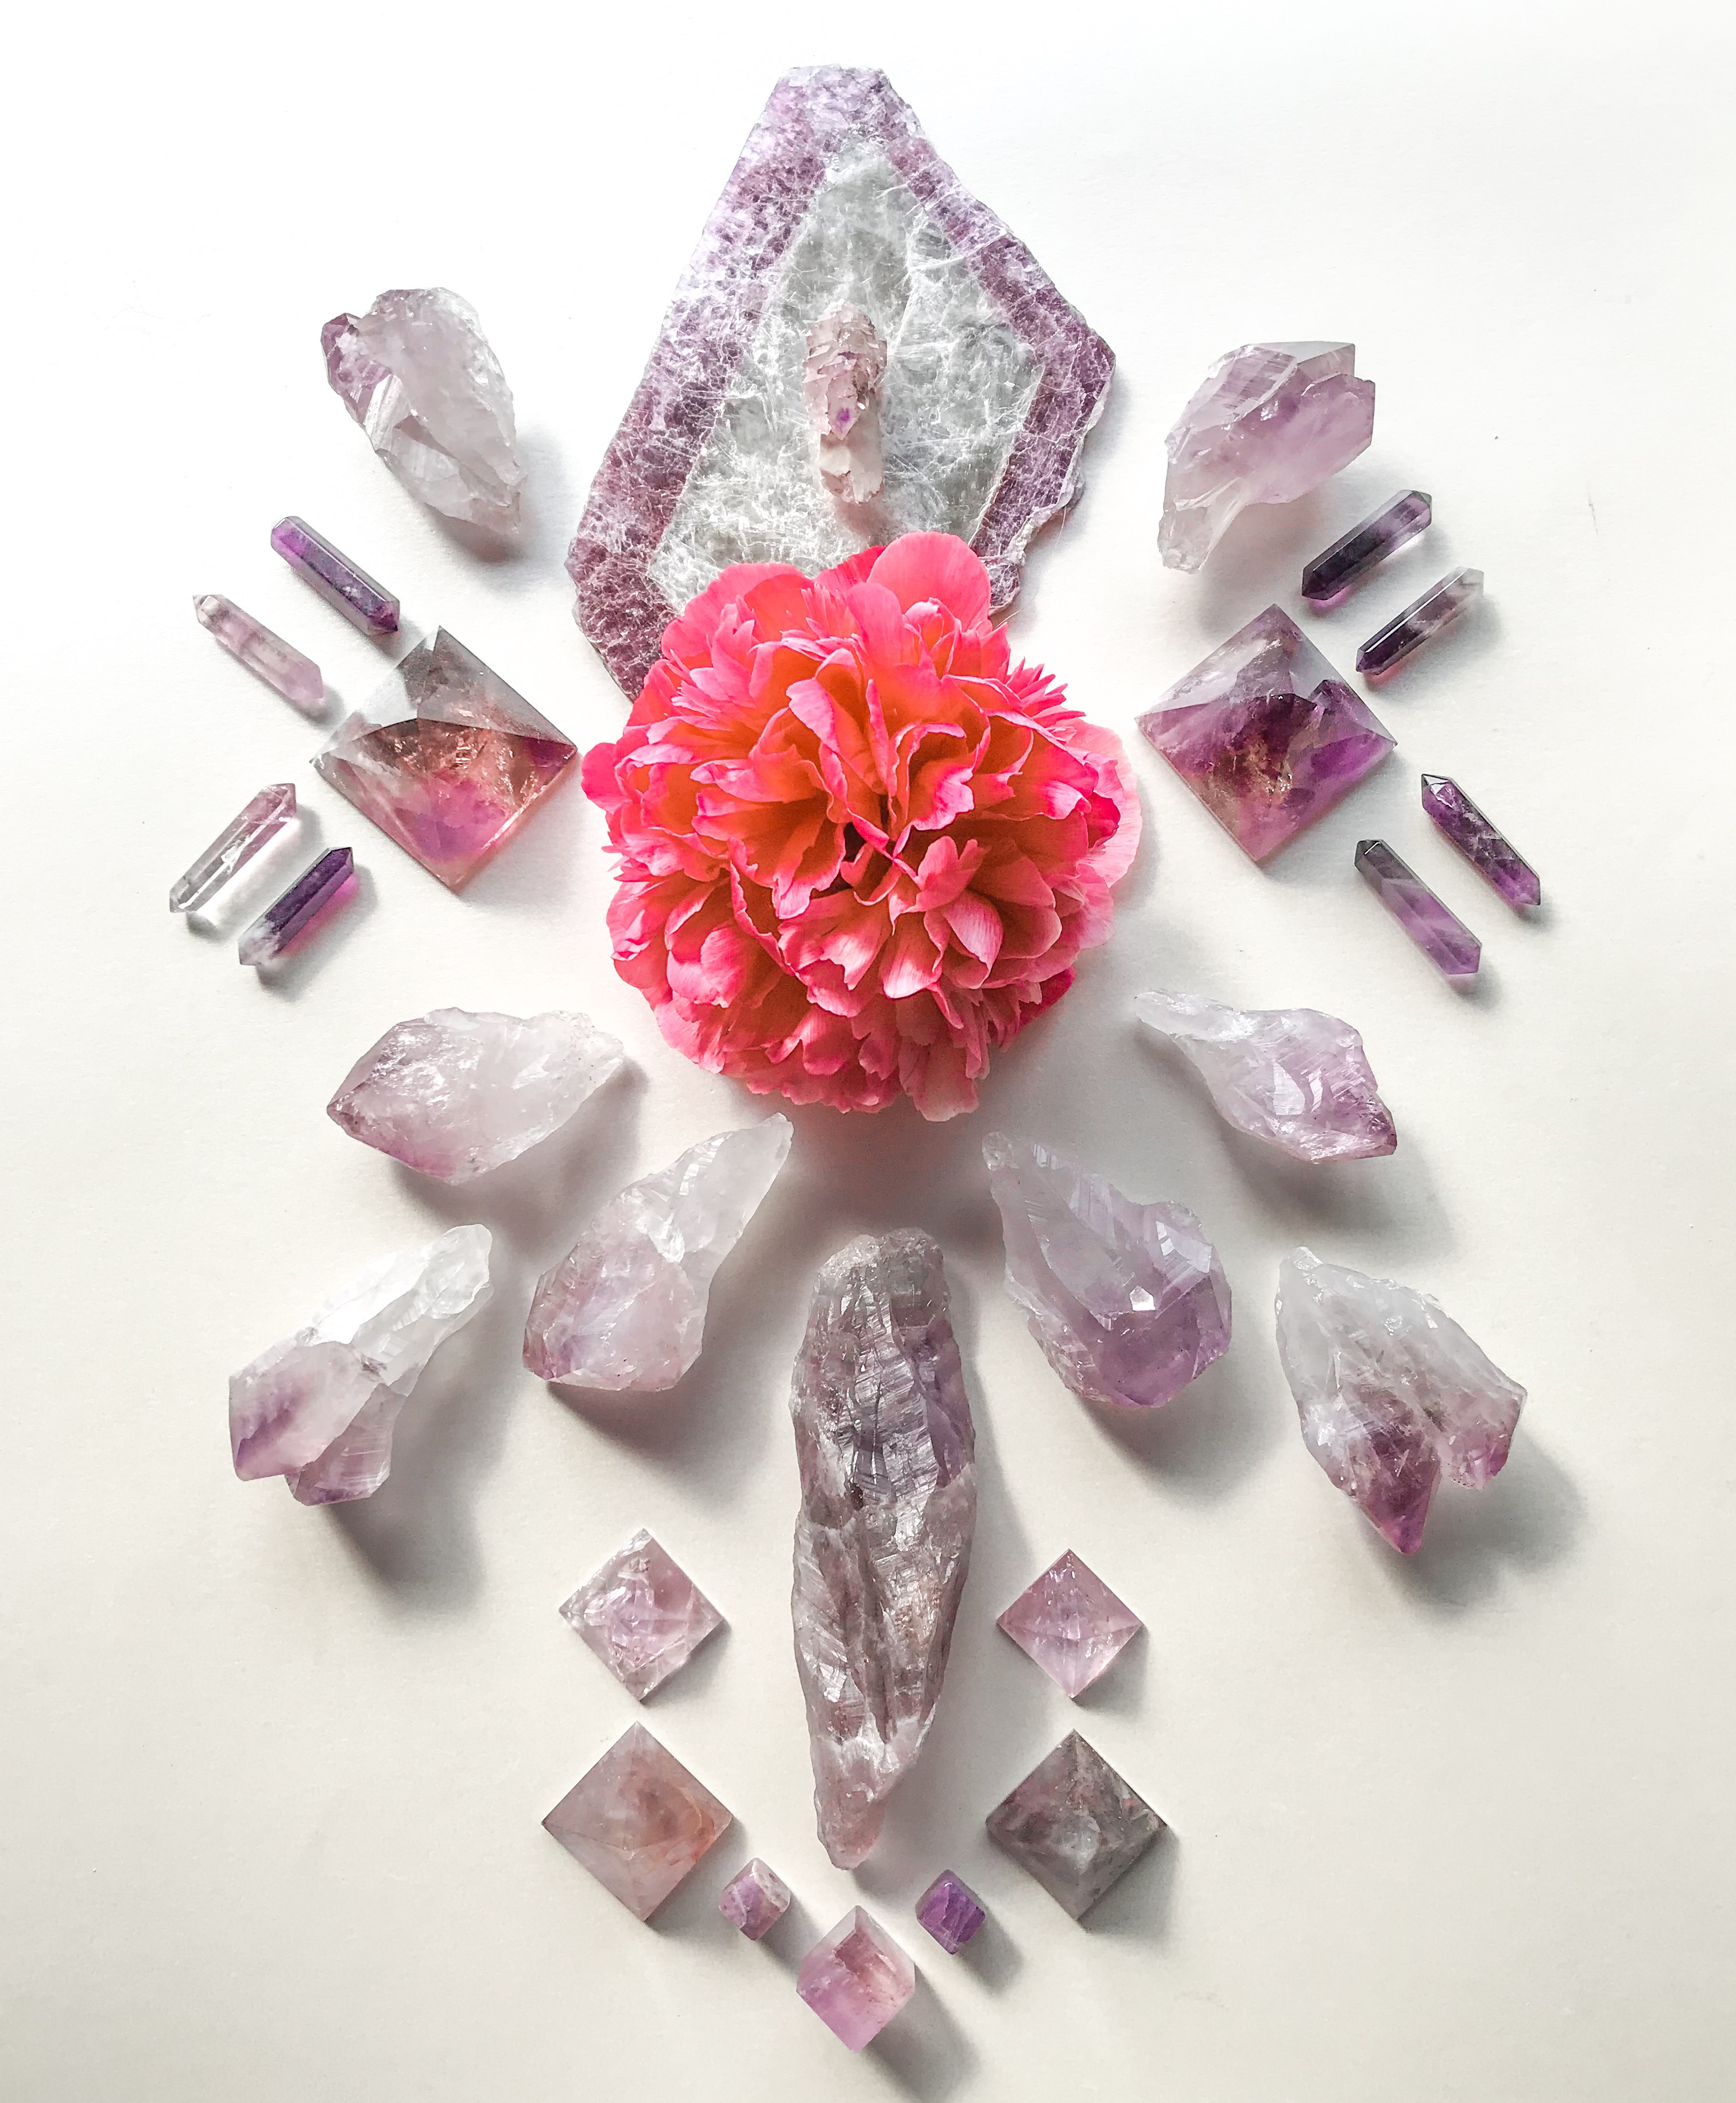 Auralite, Lepidolite with Mica, Amethyst, Scepter Amethyst, Ametrine and Paeonia